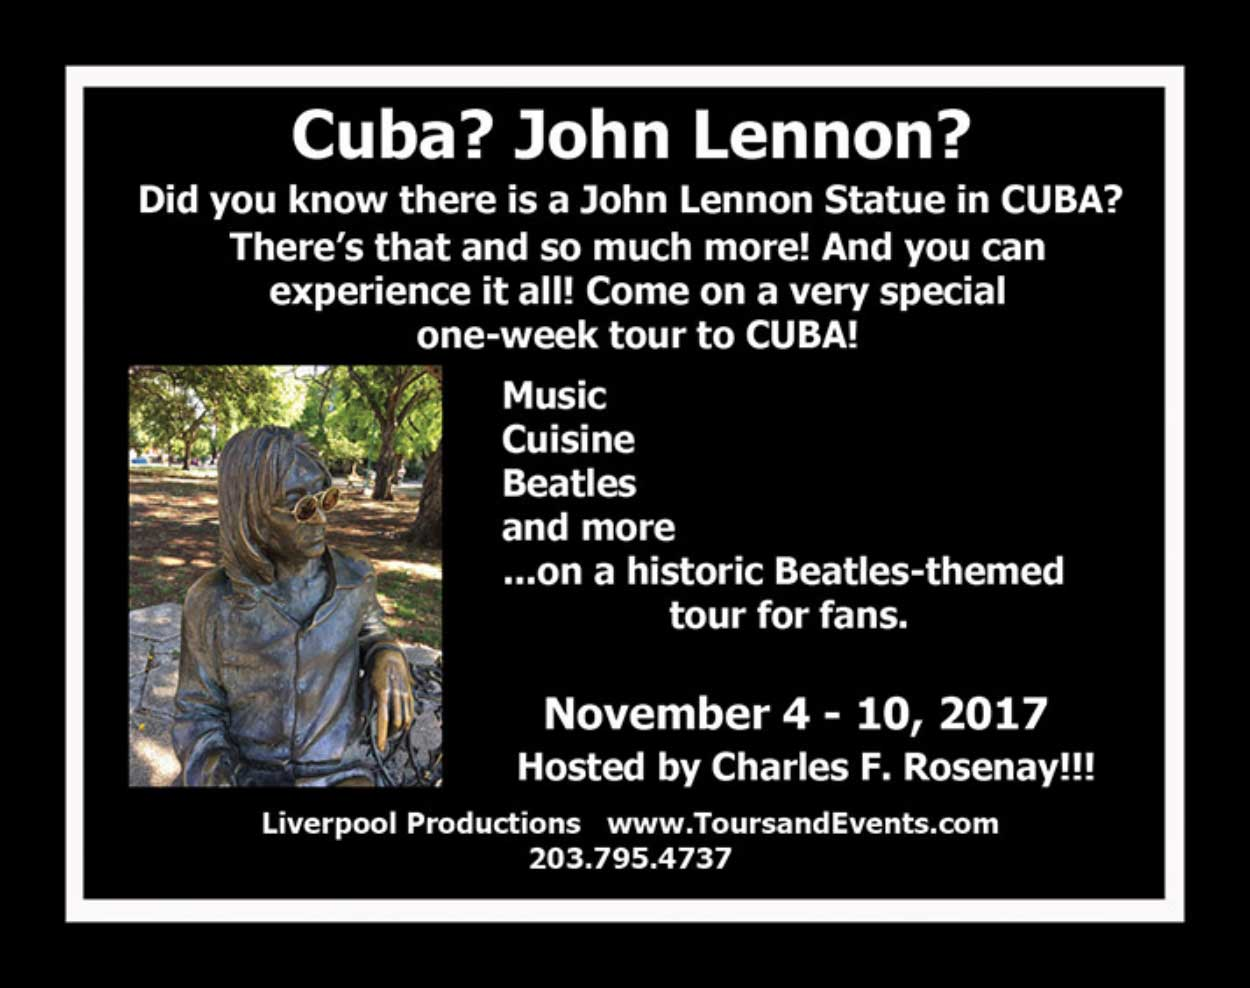 Beatles Fans Tour to CUBA Announced!